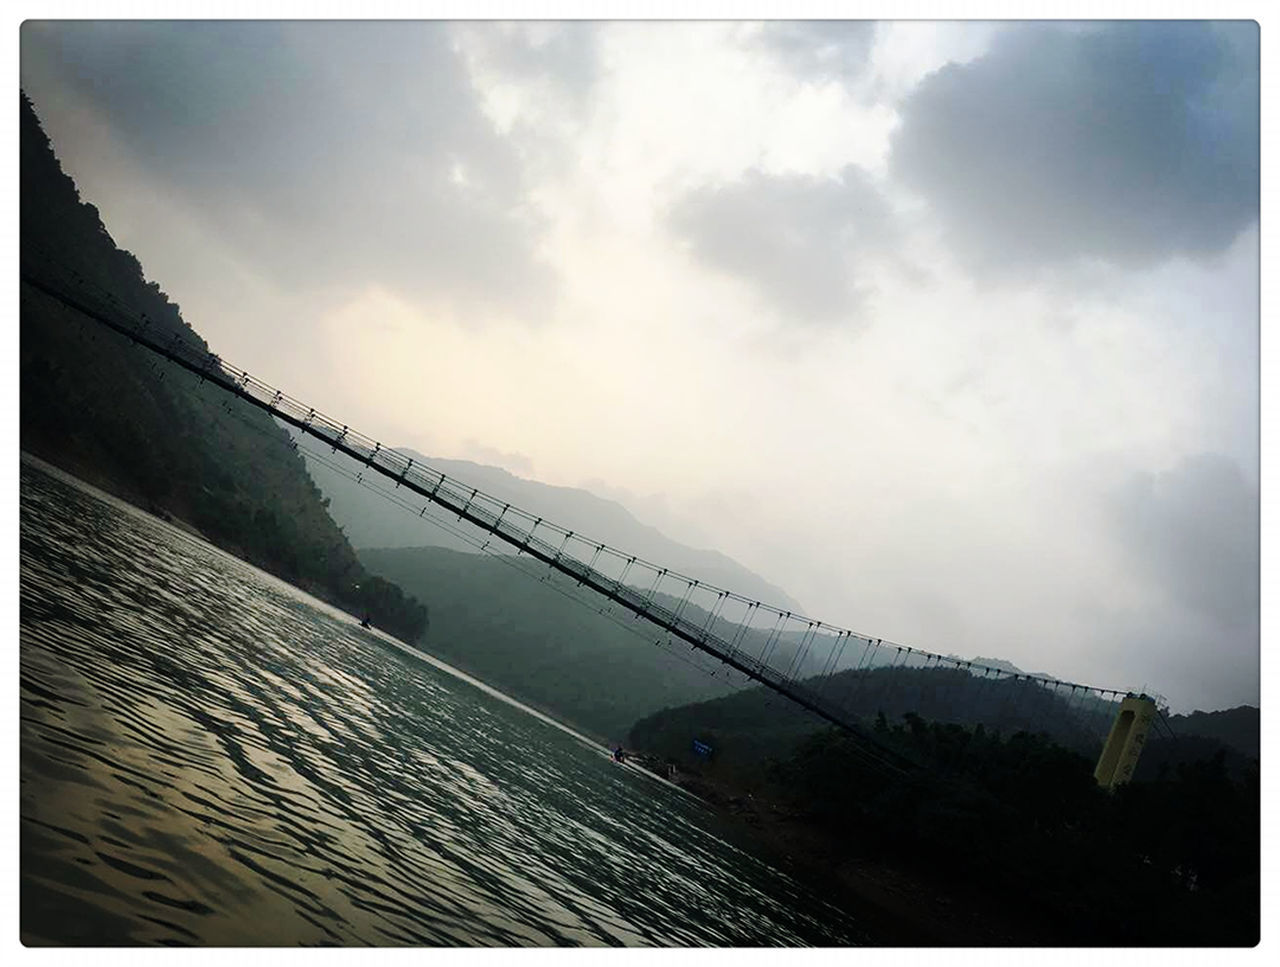 auto post production filter, water, sky, outdoors, no people, connection, day, bridge - man made structure, nature, built structure, architecture, sea, beauty in nature, panoramic, scenics